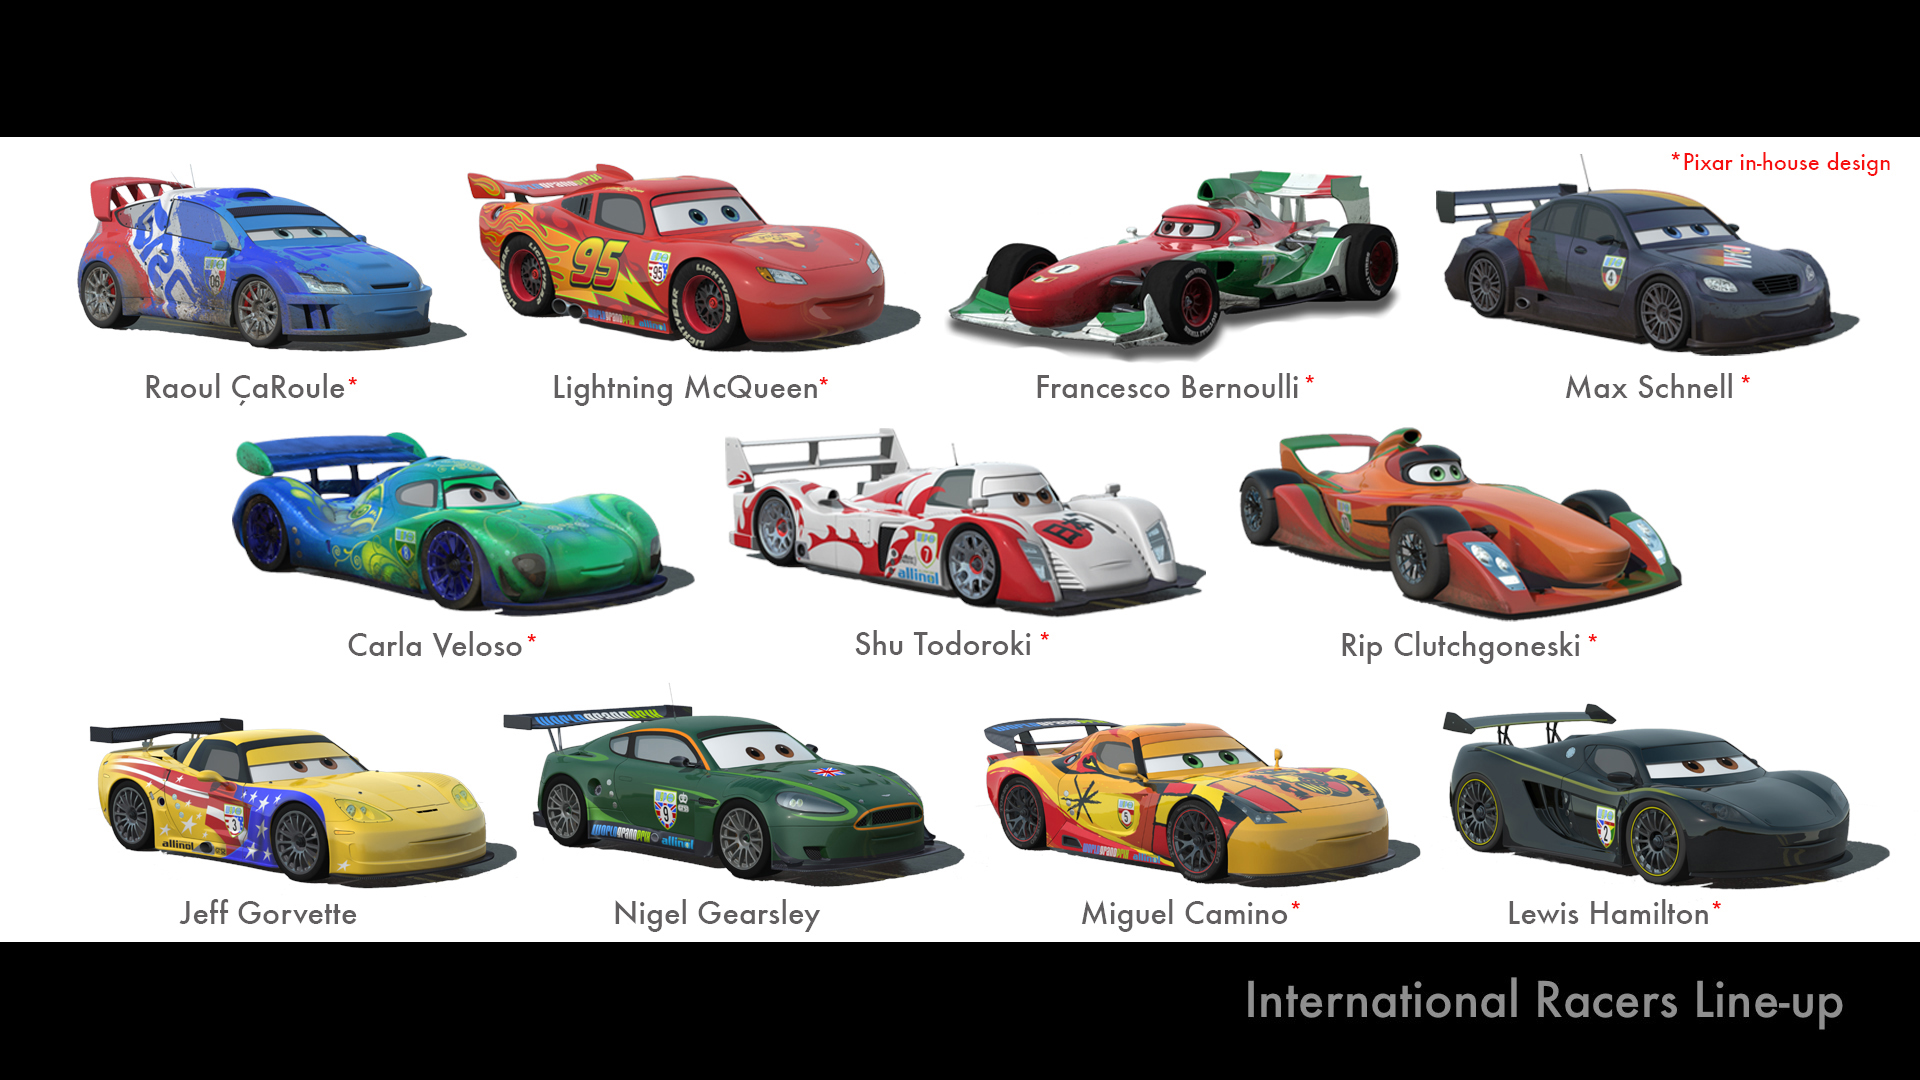 Cars Pixar Lewis Hamilton Cars 2 International Racers Line Up